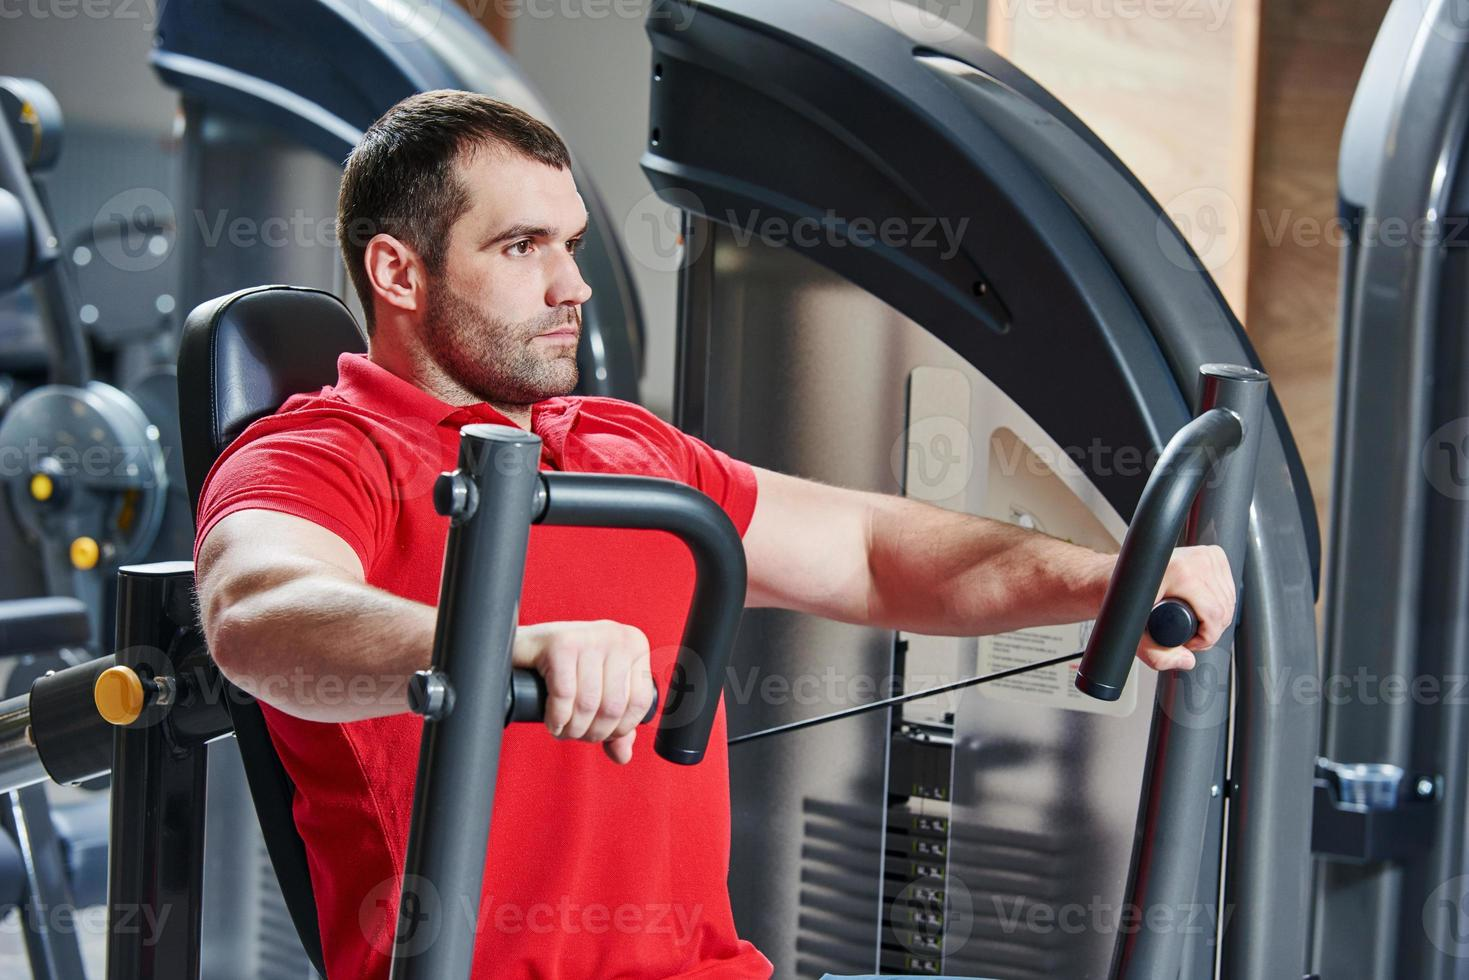 man at gym have a workout photo